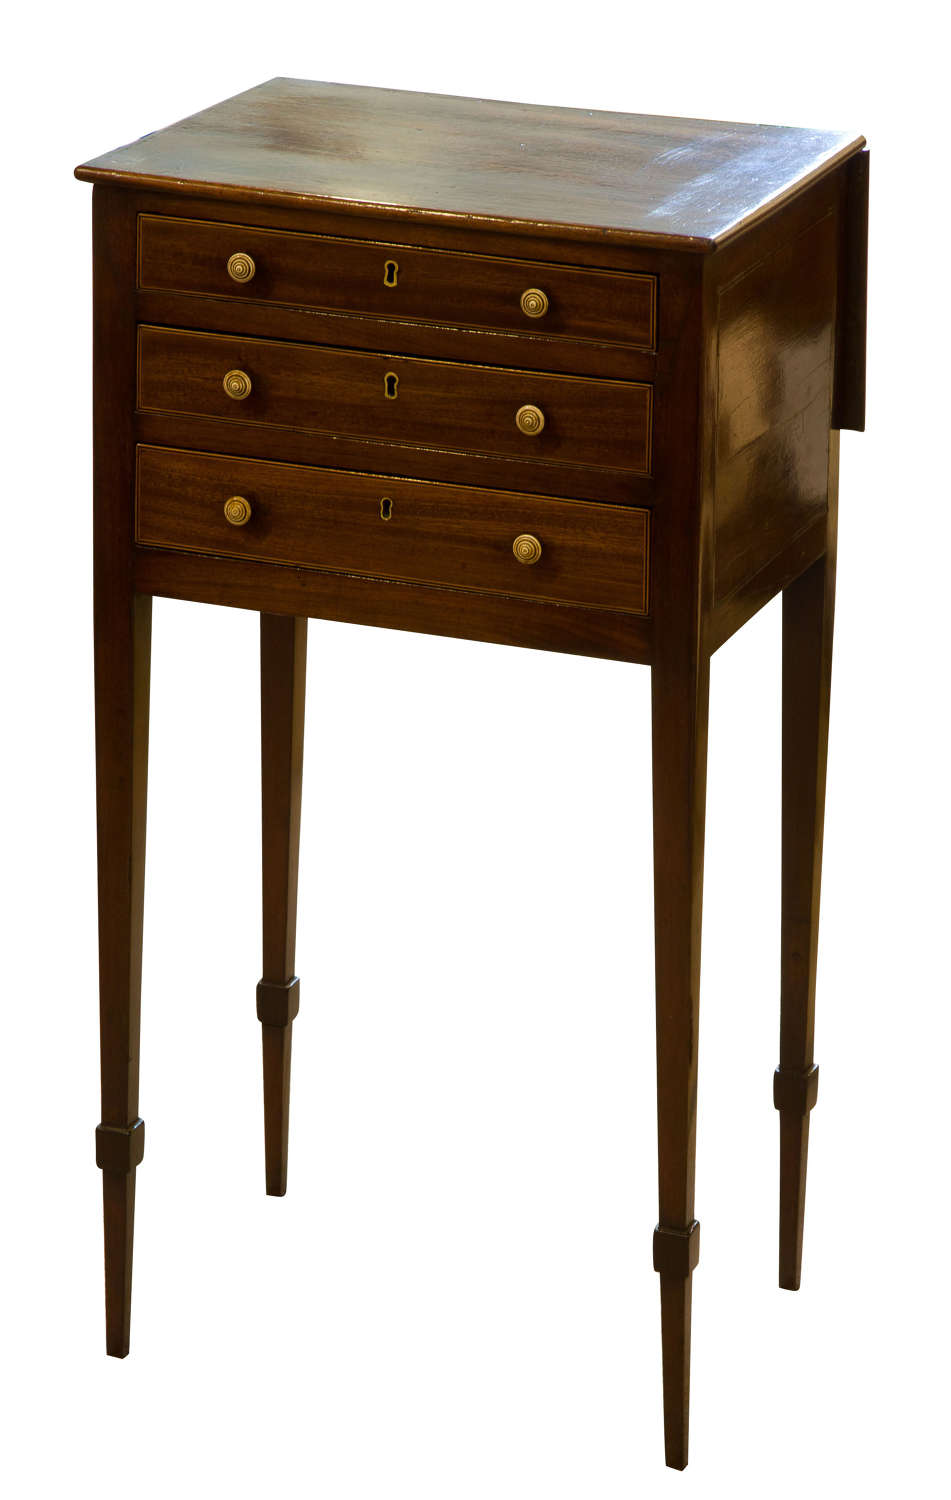 Very Small Regency Work Table c1800